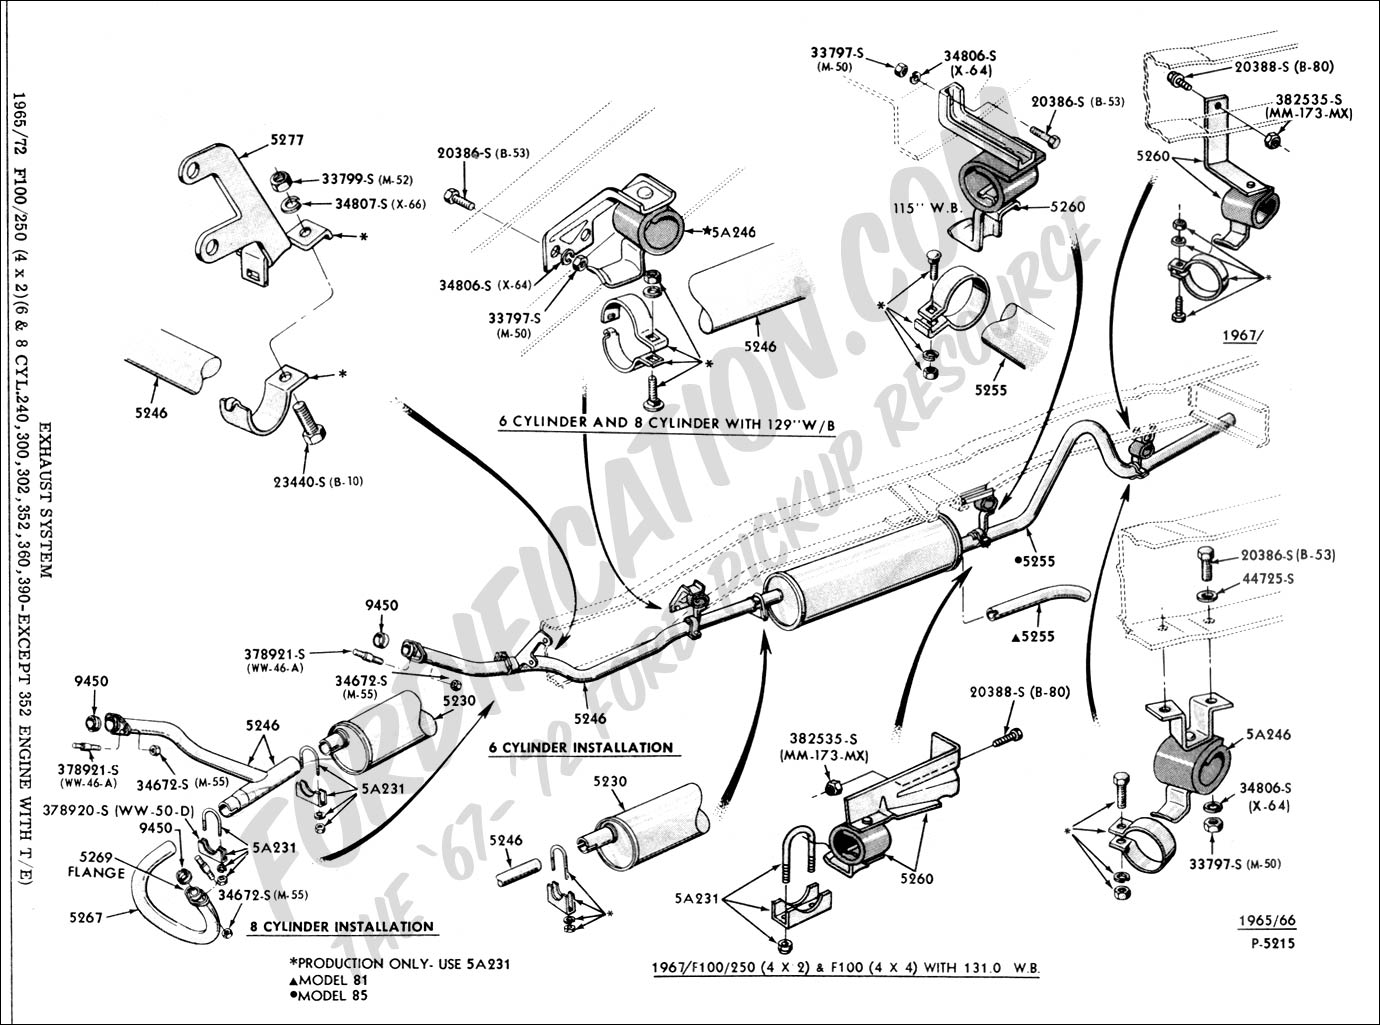 Pt Cruiser 2 4l Engine Parts Diagram Opinions About Wiring Vacuum Hose Schematic 2001 F150 5 And Fuse Box Problems